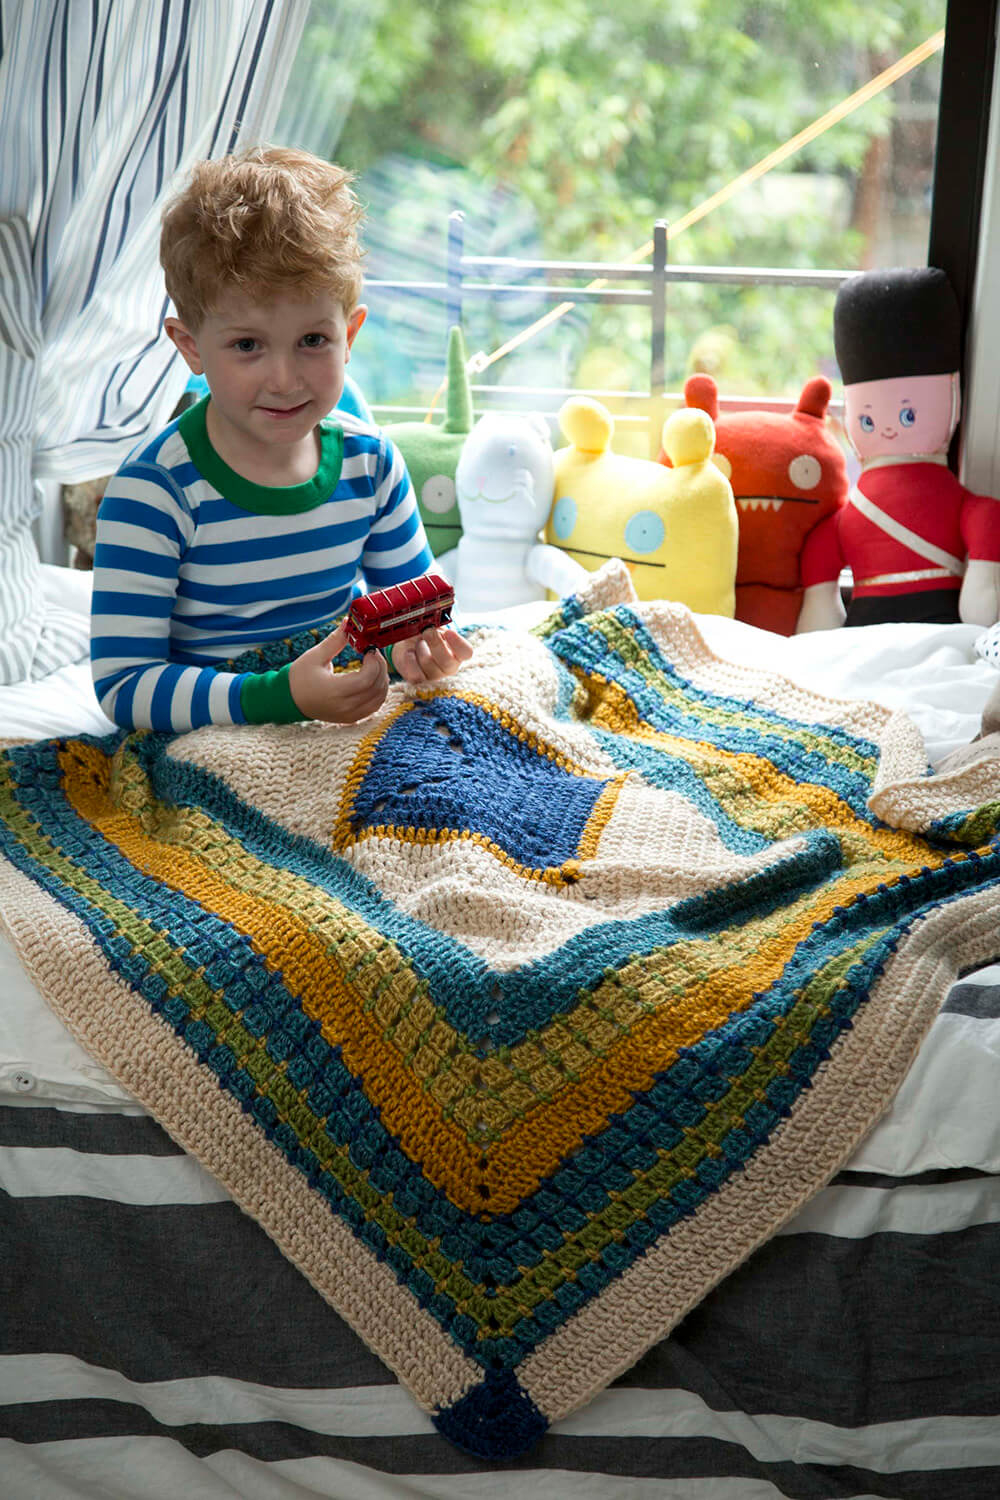 Basic & Standard Patterns for Boy Blanket Crochet Lion Brand Little Boy Blue Blanket Crochet Pattern Petals To Picots